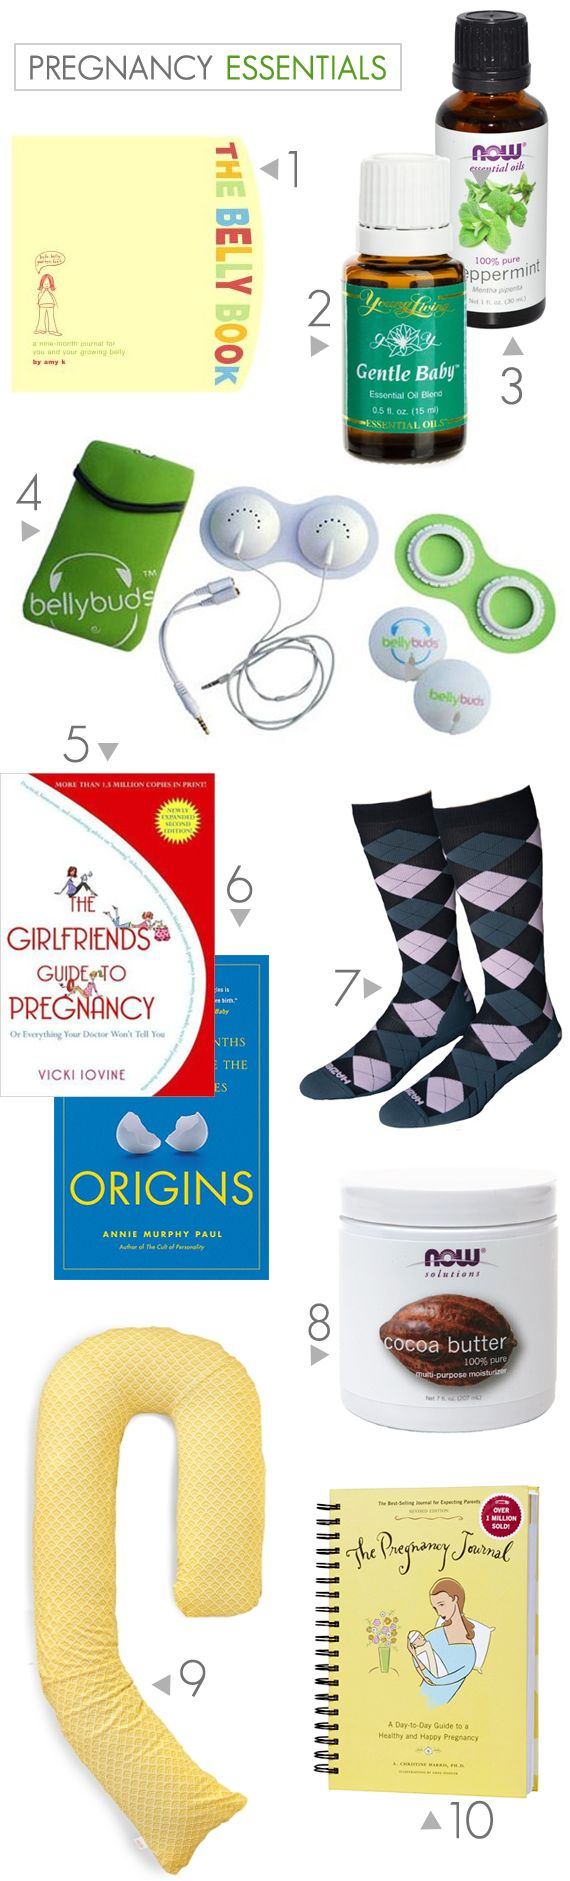 10 Pregnancy Essentials // Bubby and Bean